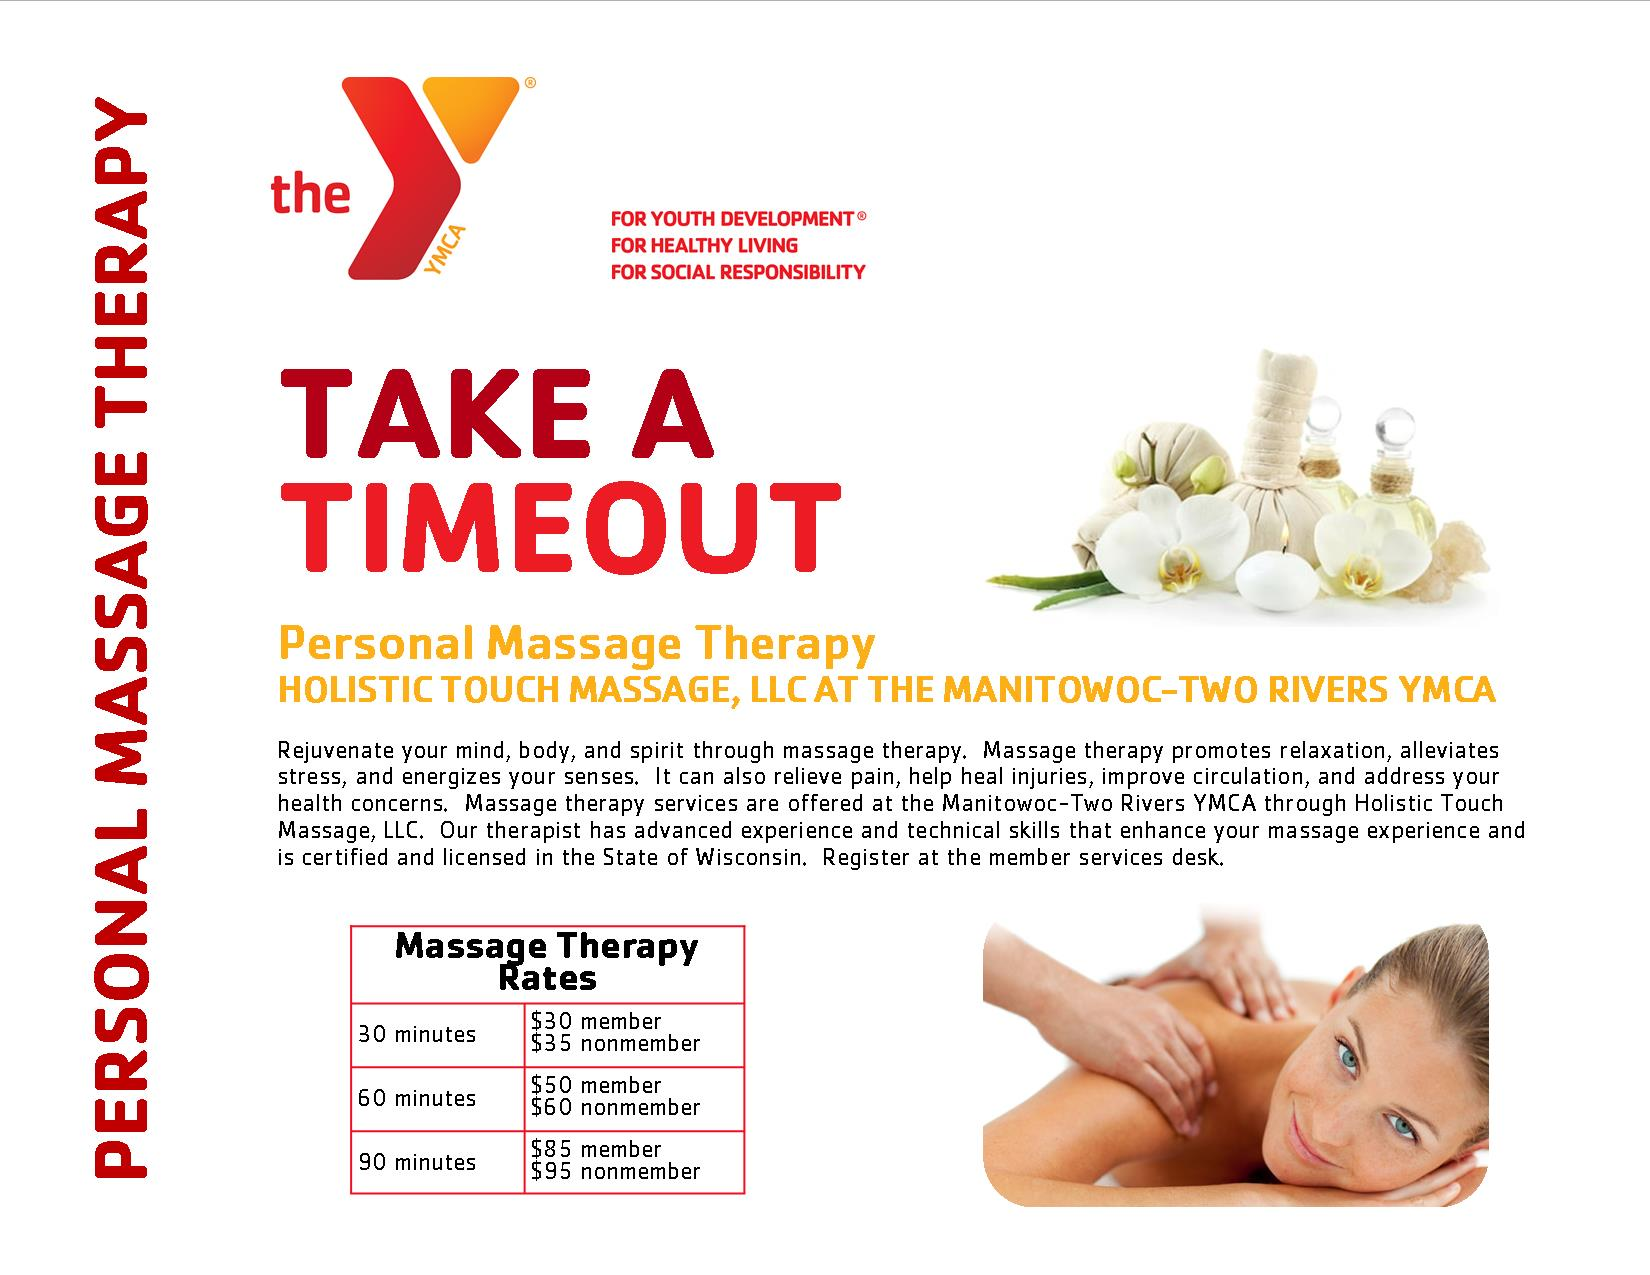 http://mtrymca.org/sites/mtrymca.org/assets/images/programs/Massage-Flyer.jpg